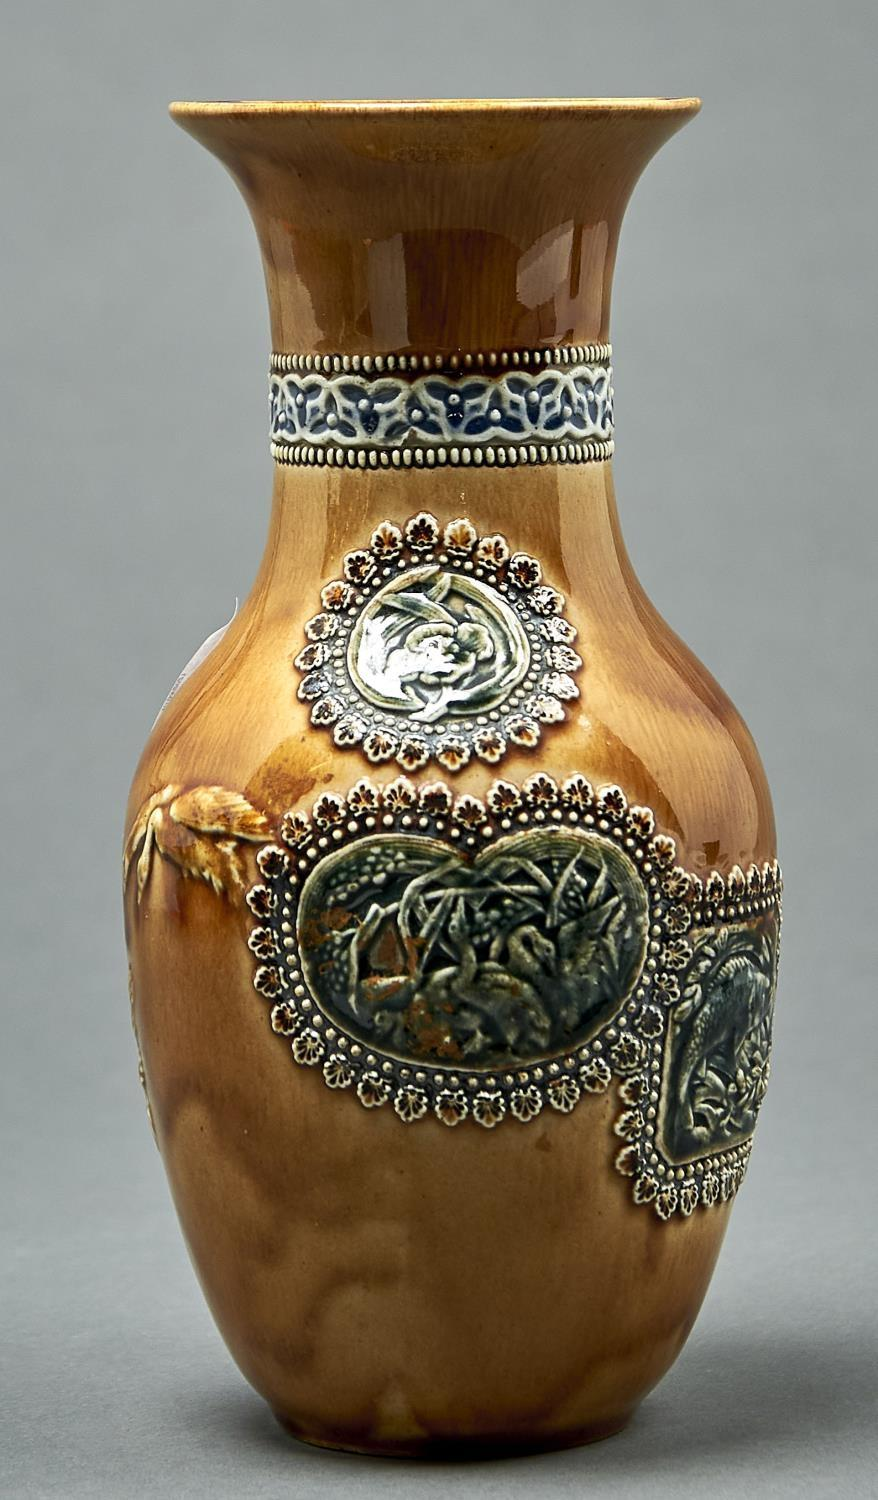 AN AESTHETIC DOULTON WARE VASE, C1880, MOULDED IN RELIEF WITH BIRDS IN FLIGHT AND DECORATED BY